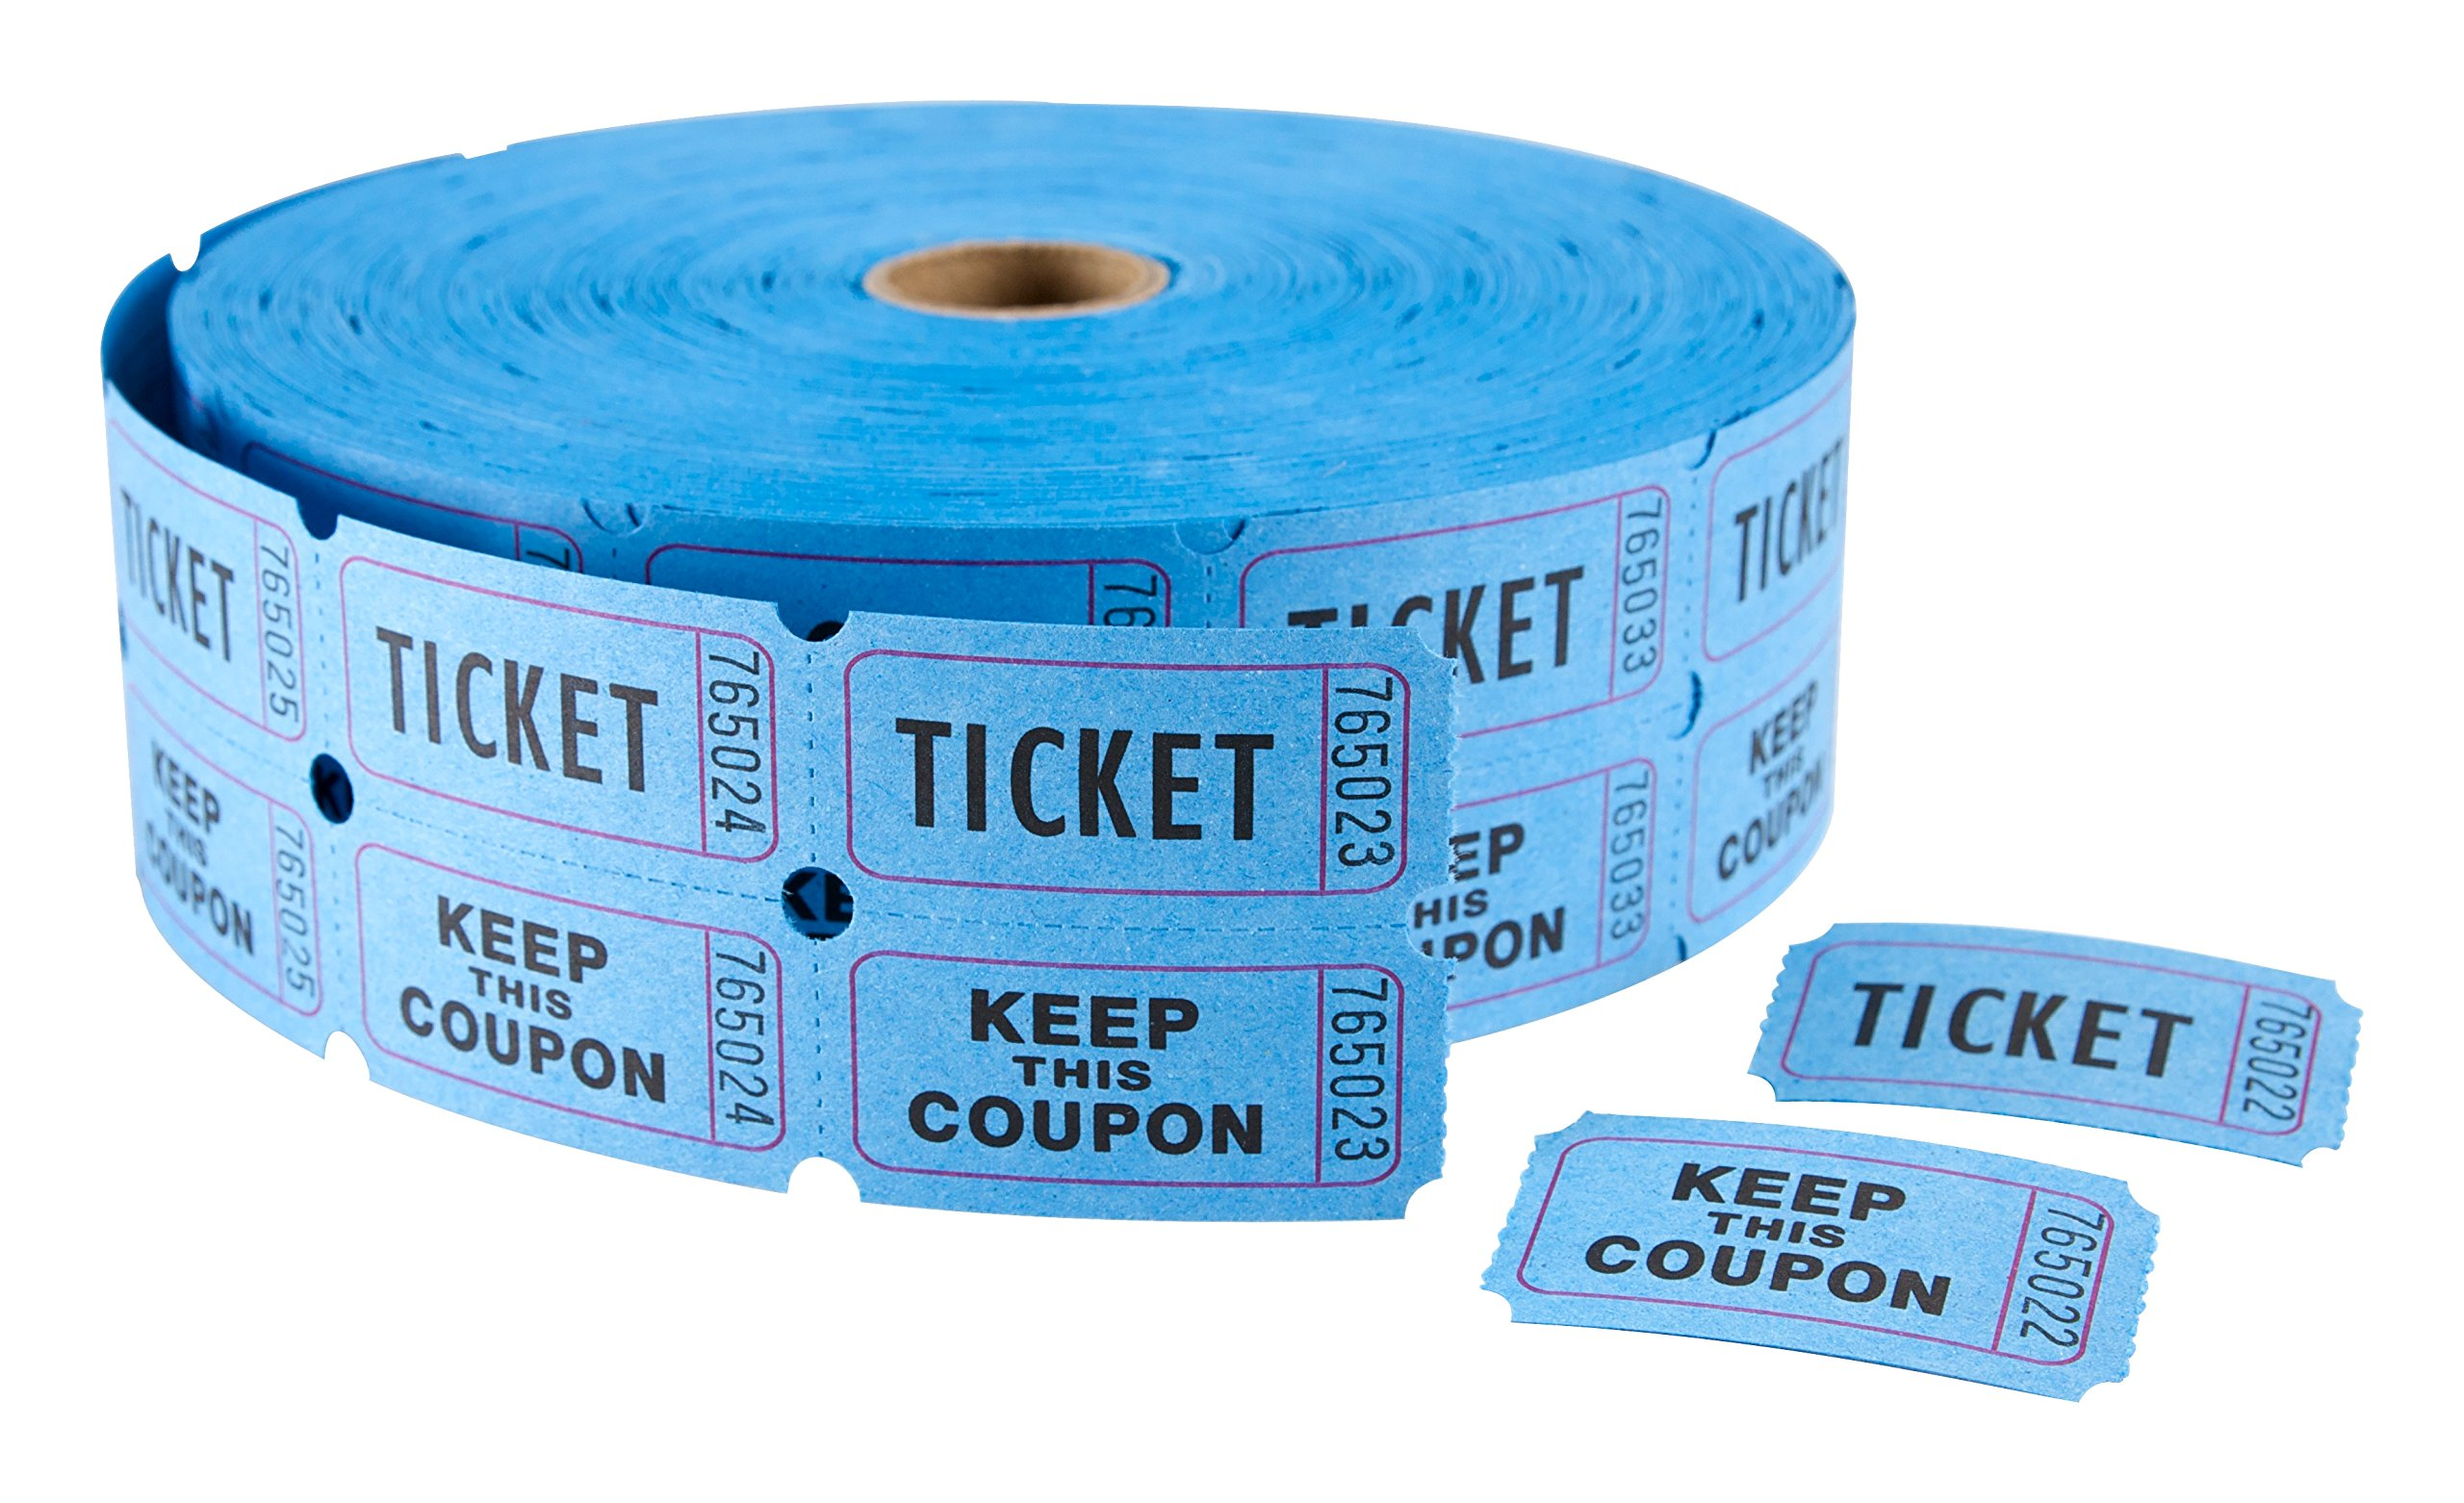 MACO Double Roll - Ticket/Keep This Coupon - Tickets, 1 x 2 Inches, Blue, 2000 Per Roll (18-621)